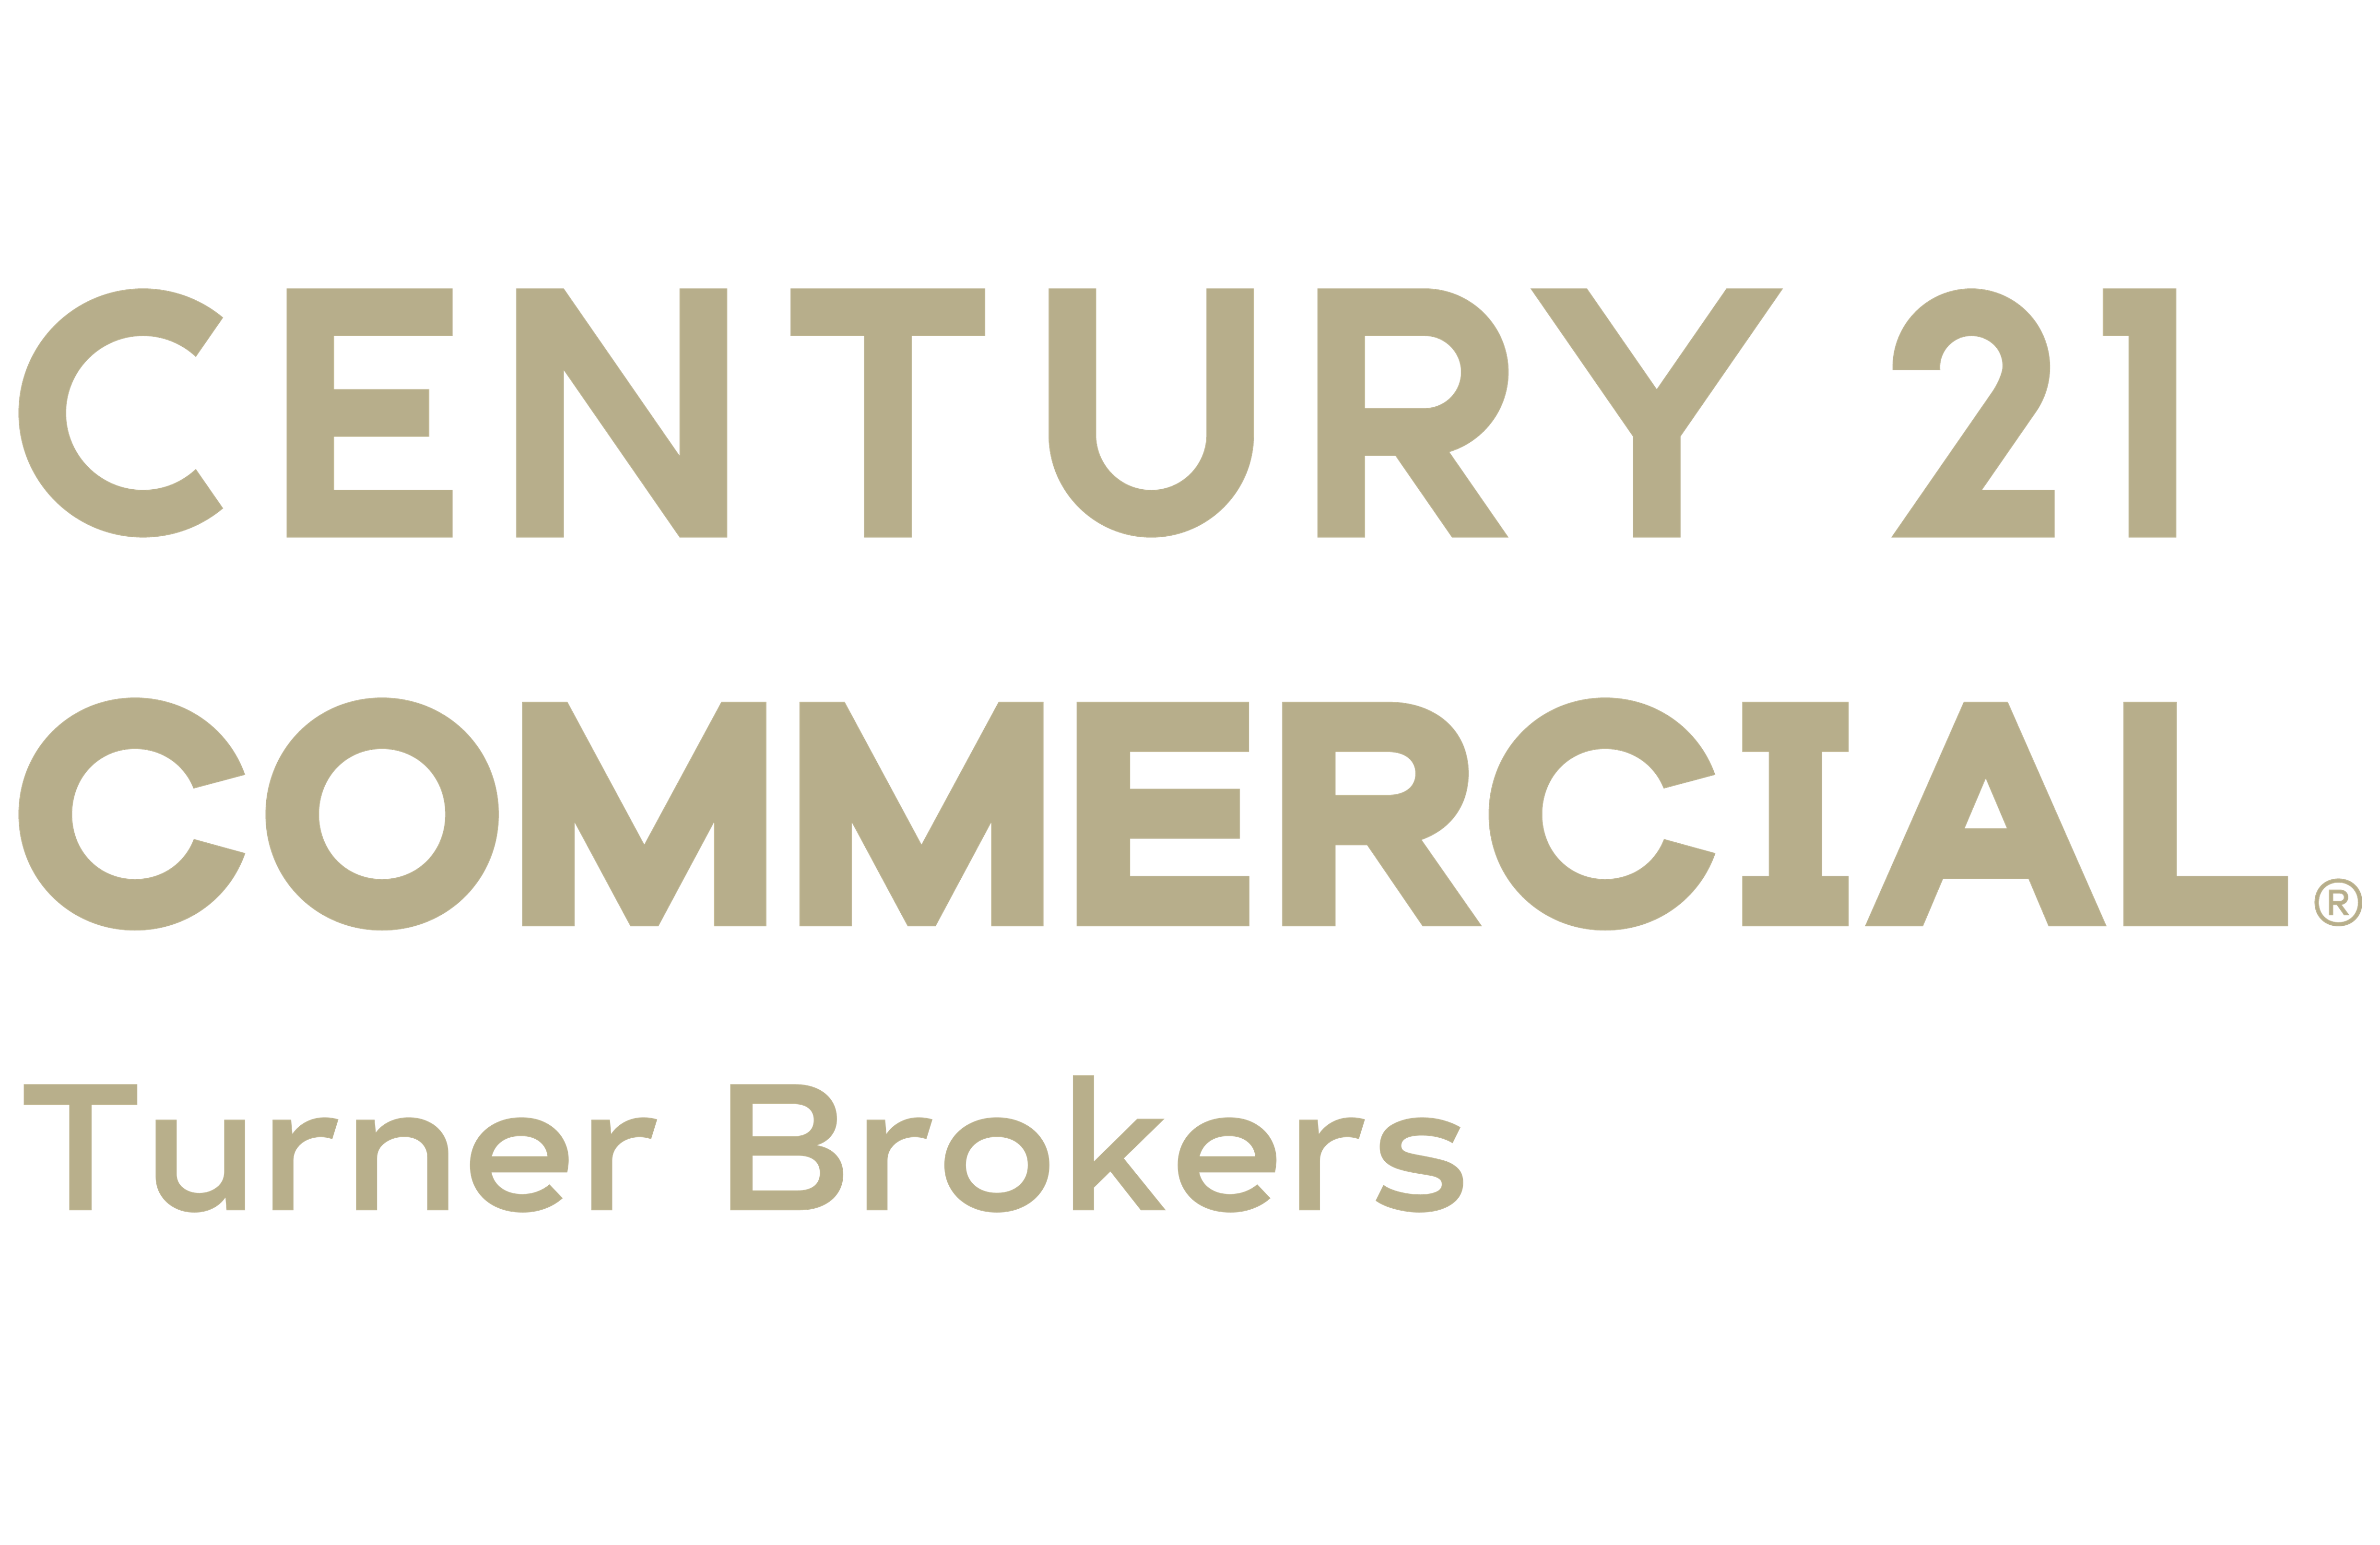 Andrea Eckman of CENTURY 21 Turner Brokers logo